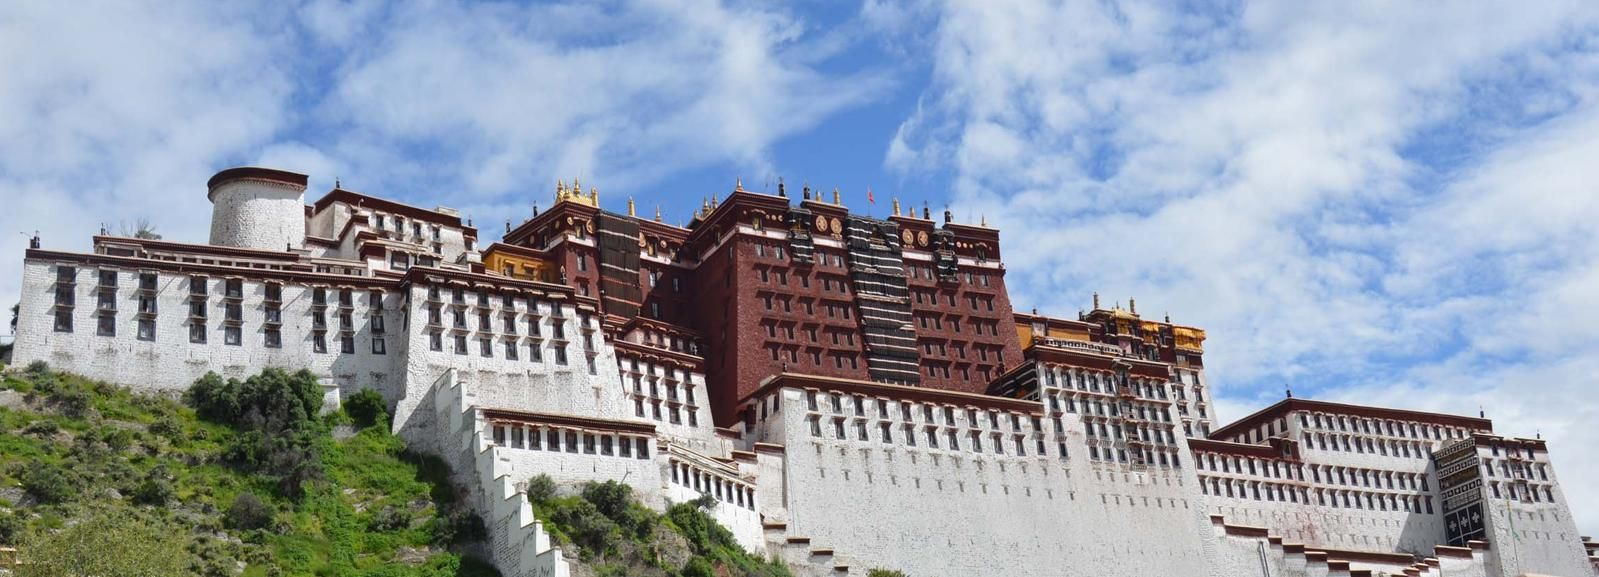 From Kathmandu: 8-Day Tibetan Excursion Fly-In Drive-Out